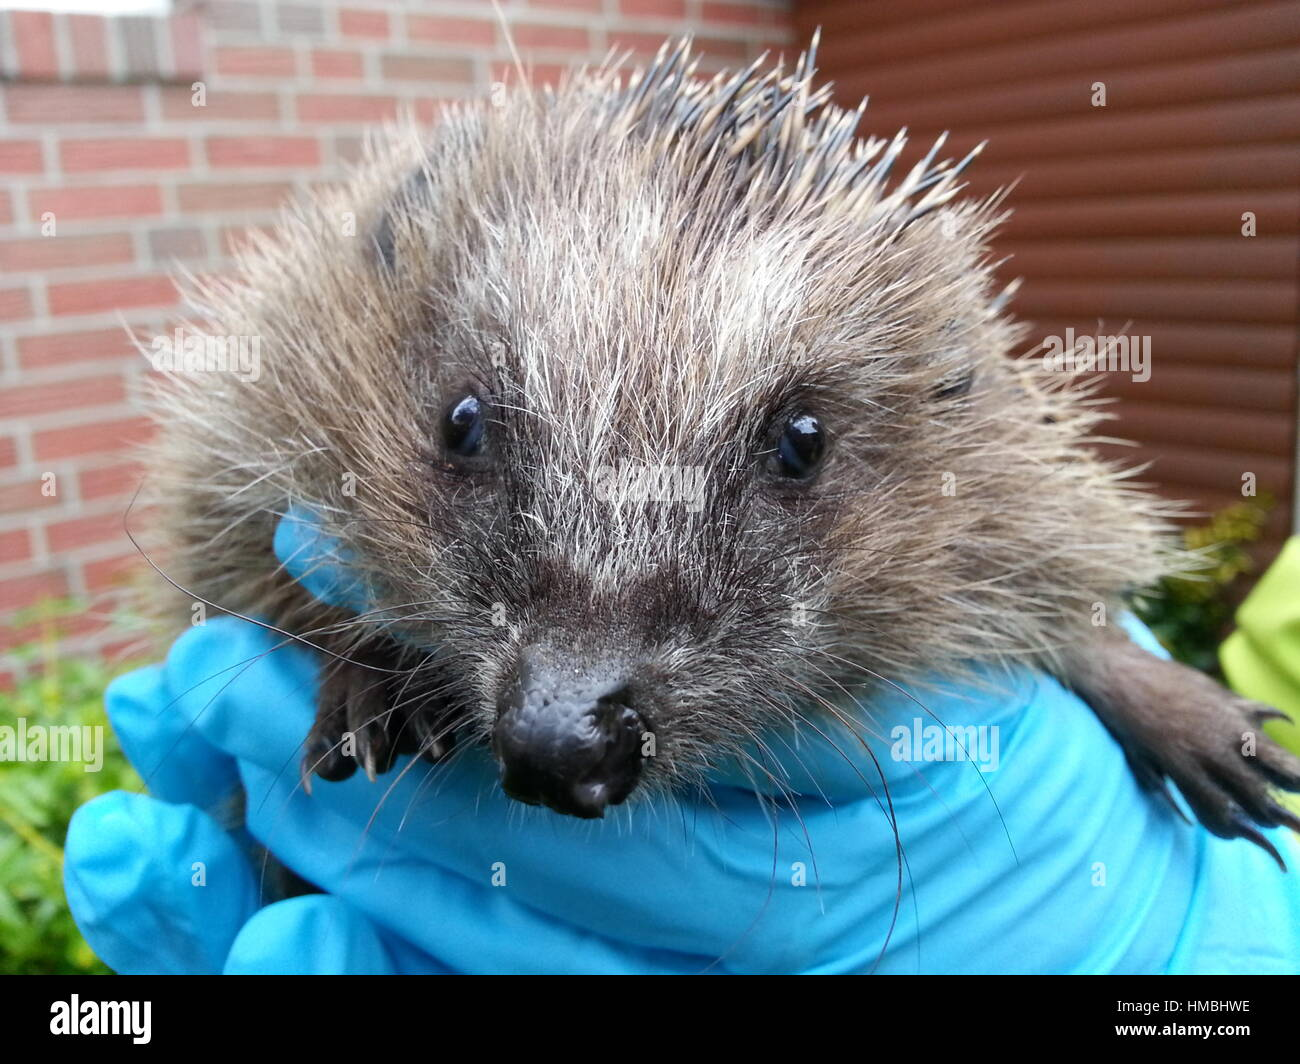 Hedgehog in gloved hands - Stock Image